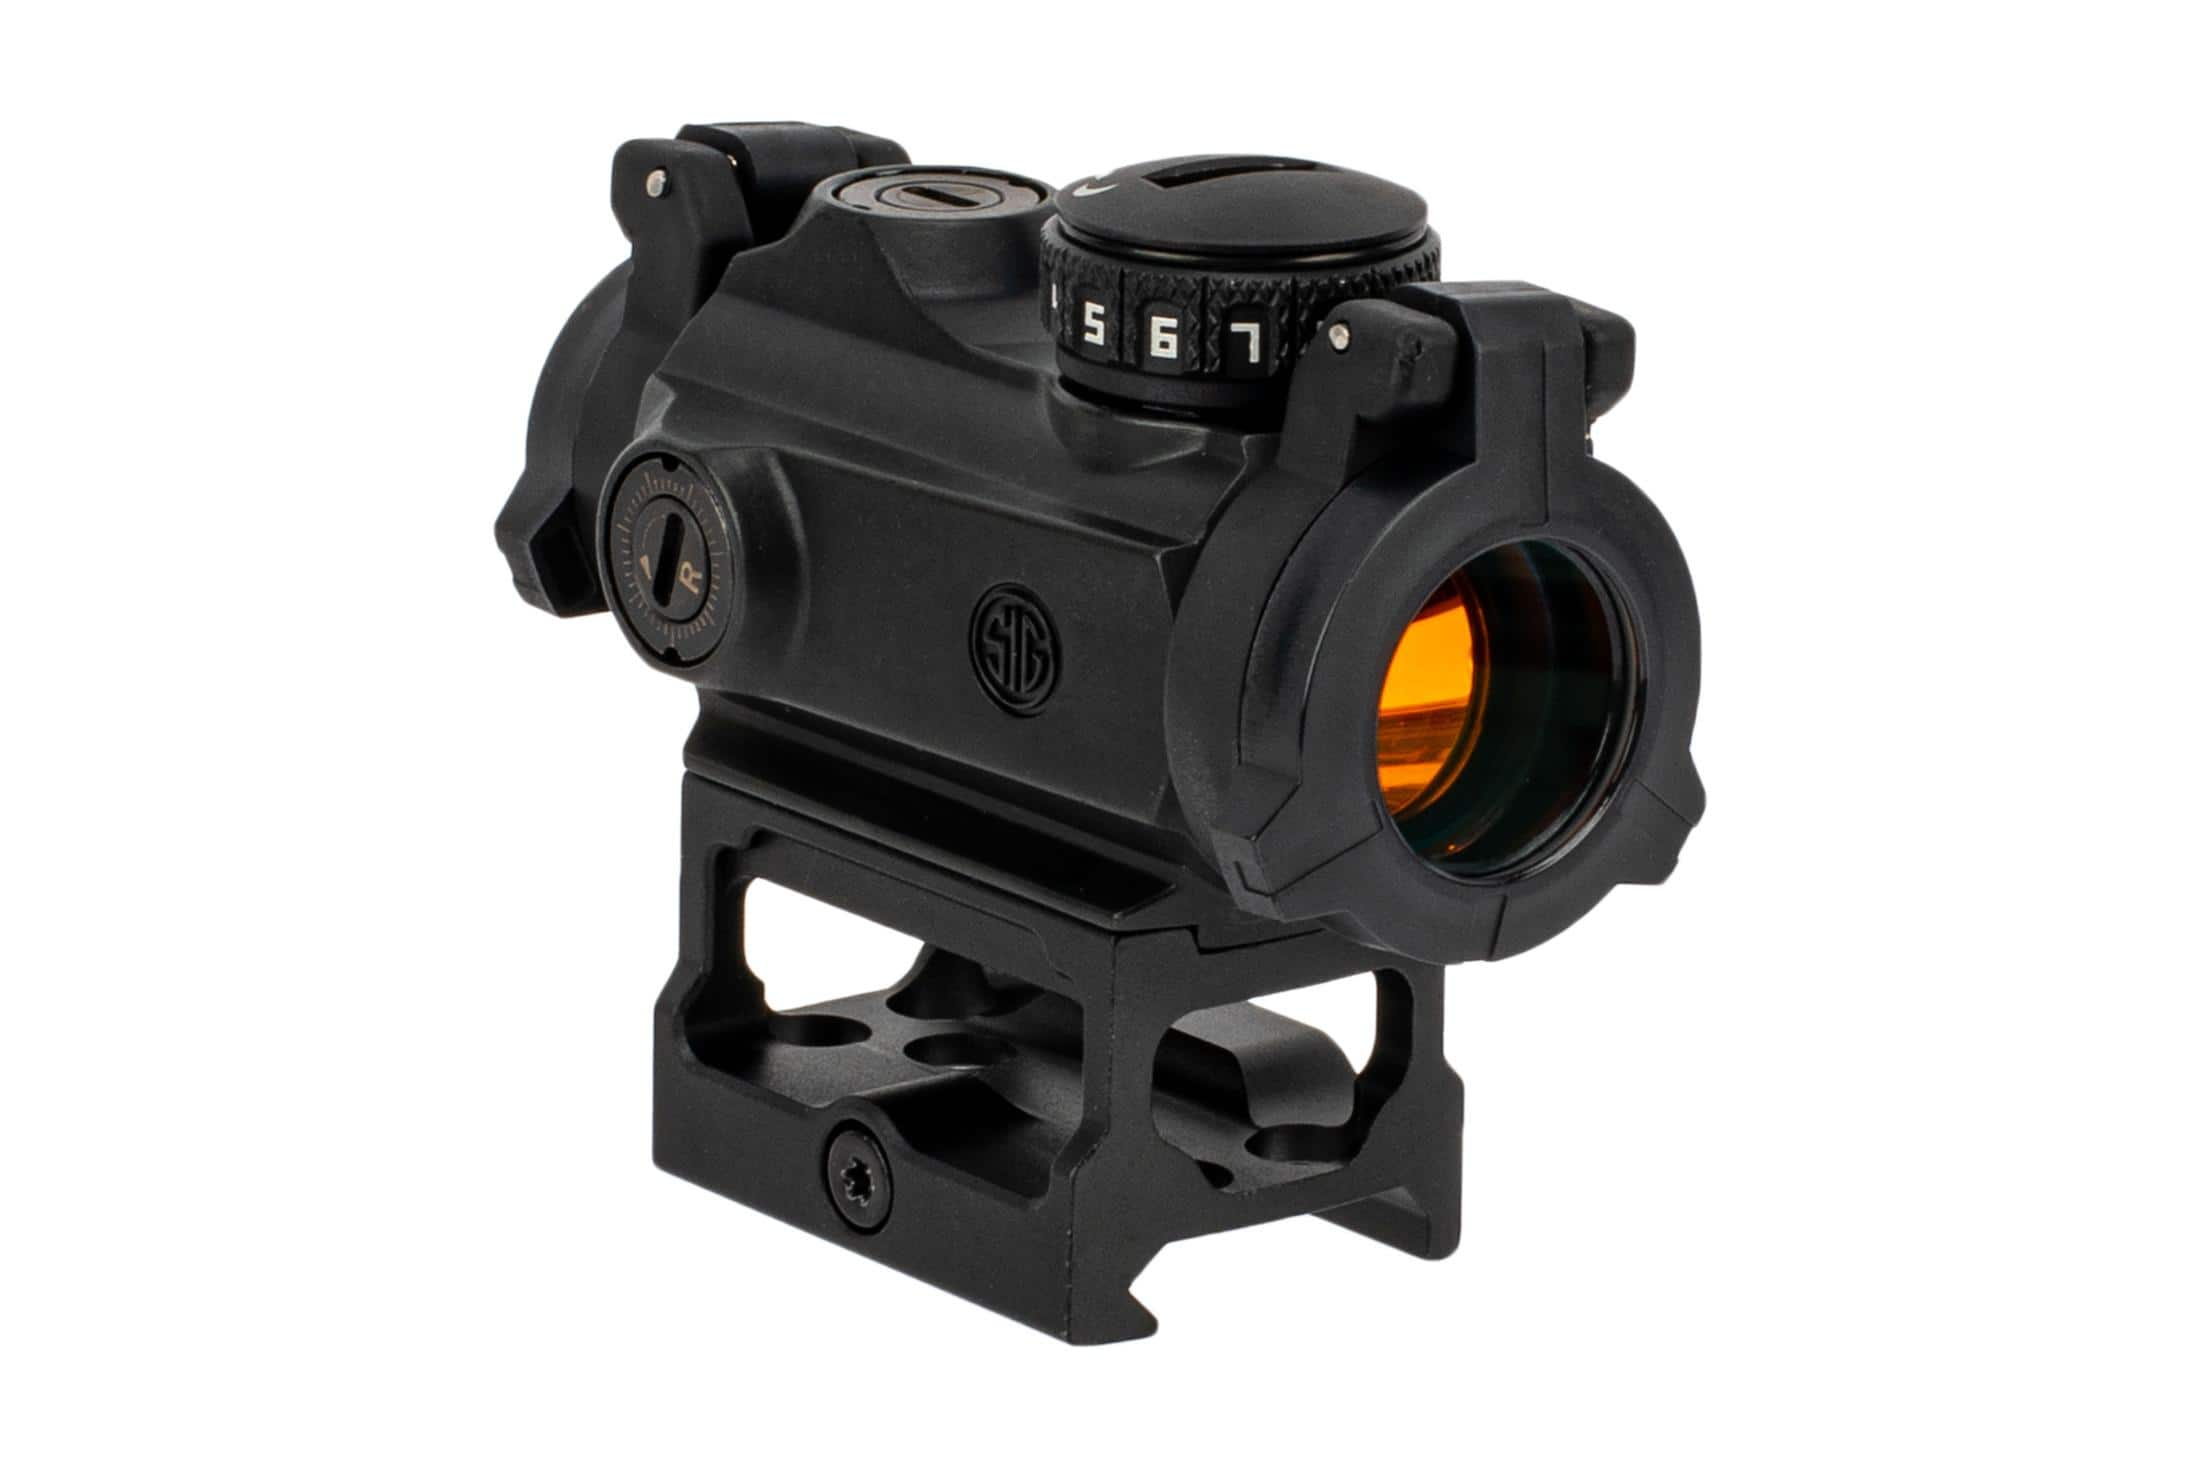 SIG Sauer ROMEO-MSR Red Dot Sight at Primary Arms for $109.99 with Free shipping (for the entire order)